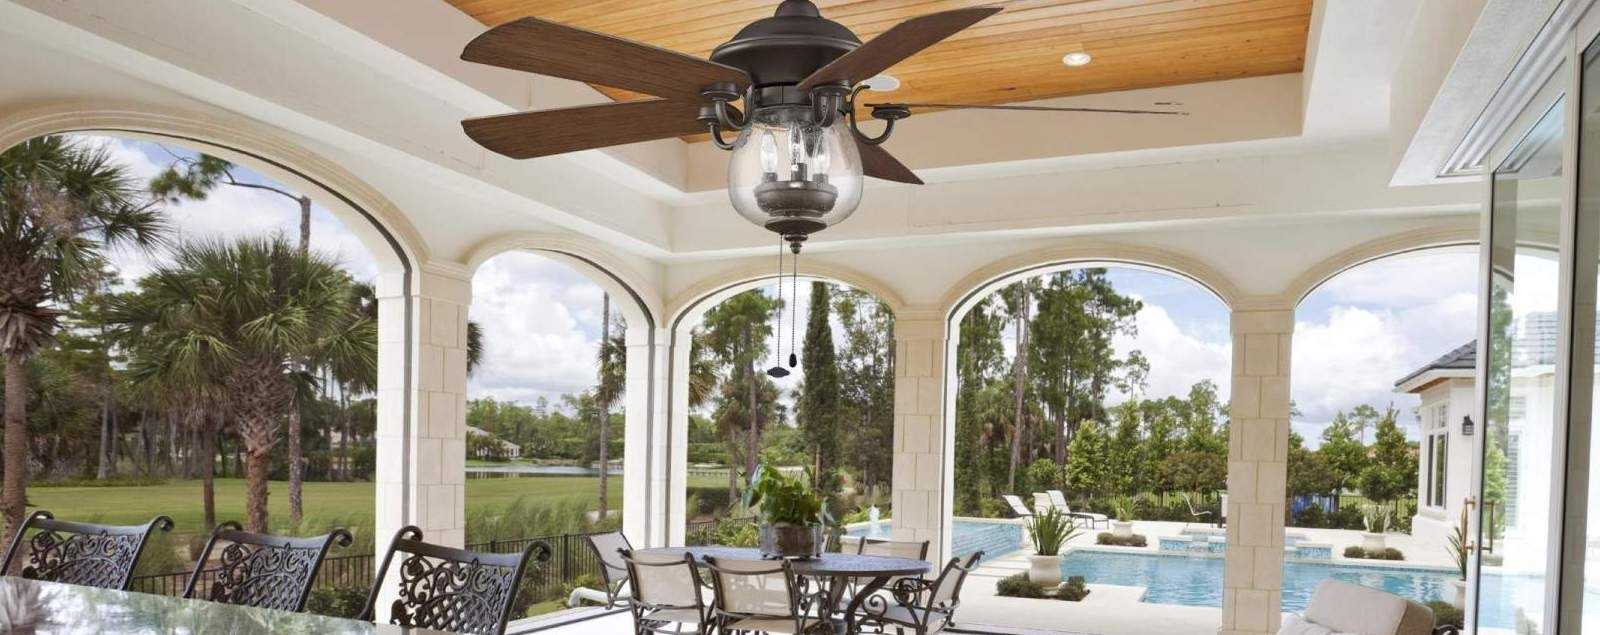 Famous Outdoor Ceiling Fans For Coastal Areas Within Outdoor Ceiling Fans – Shop Wet, Dry, And Damp Rated Outdoor Fans (View 3 of 20)